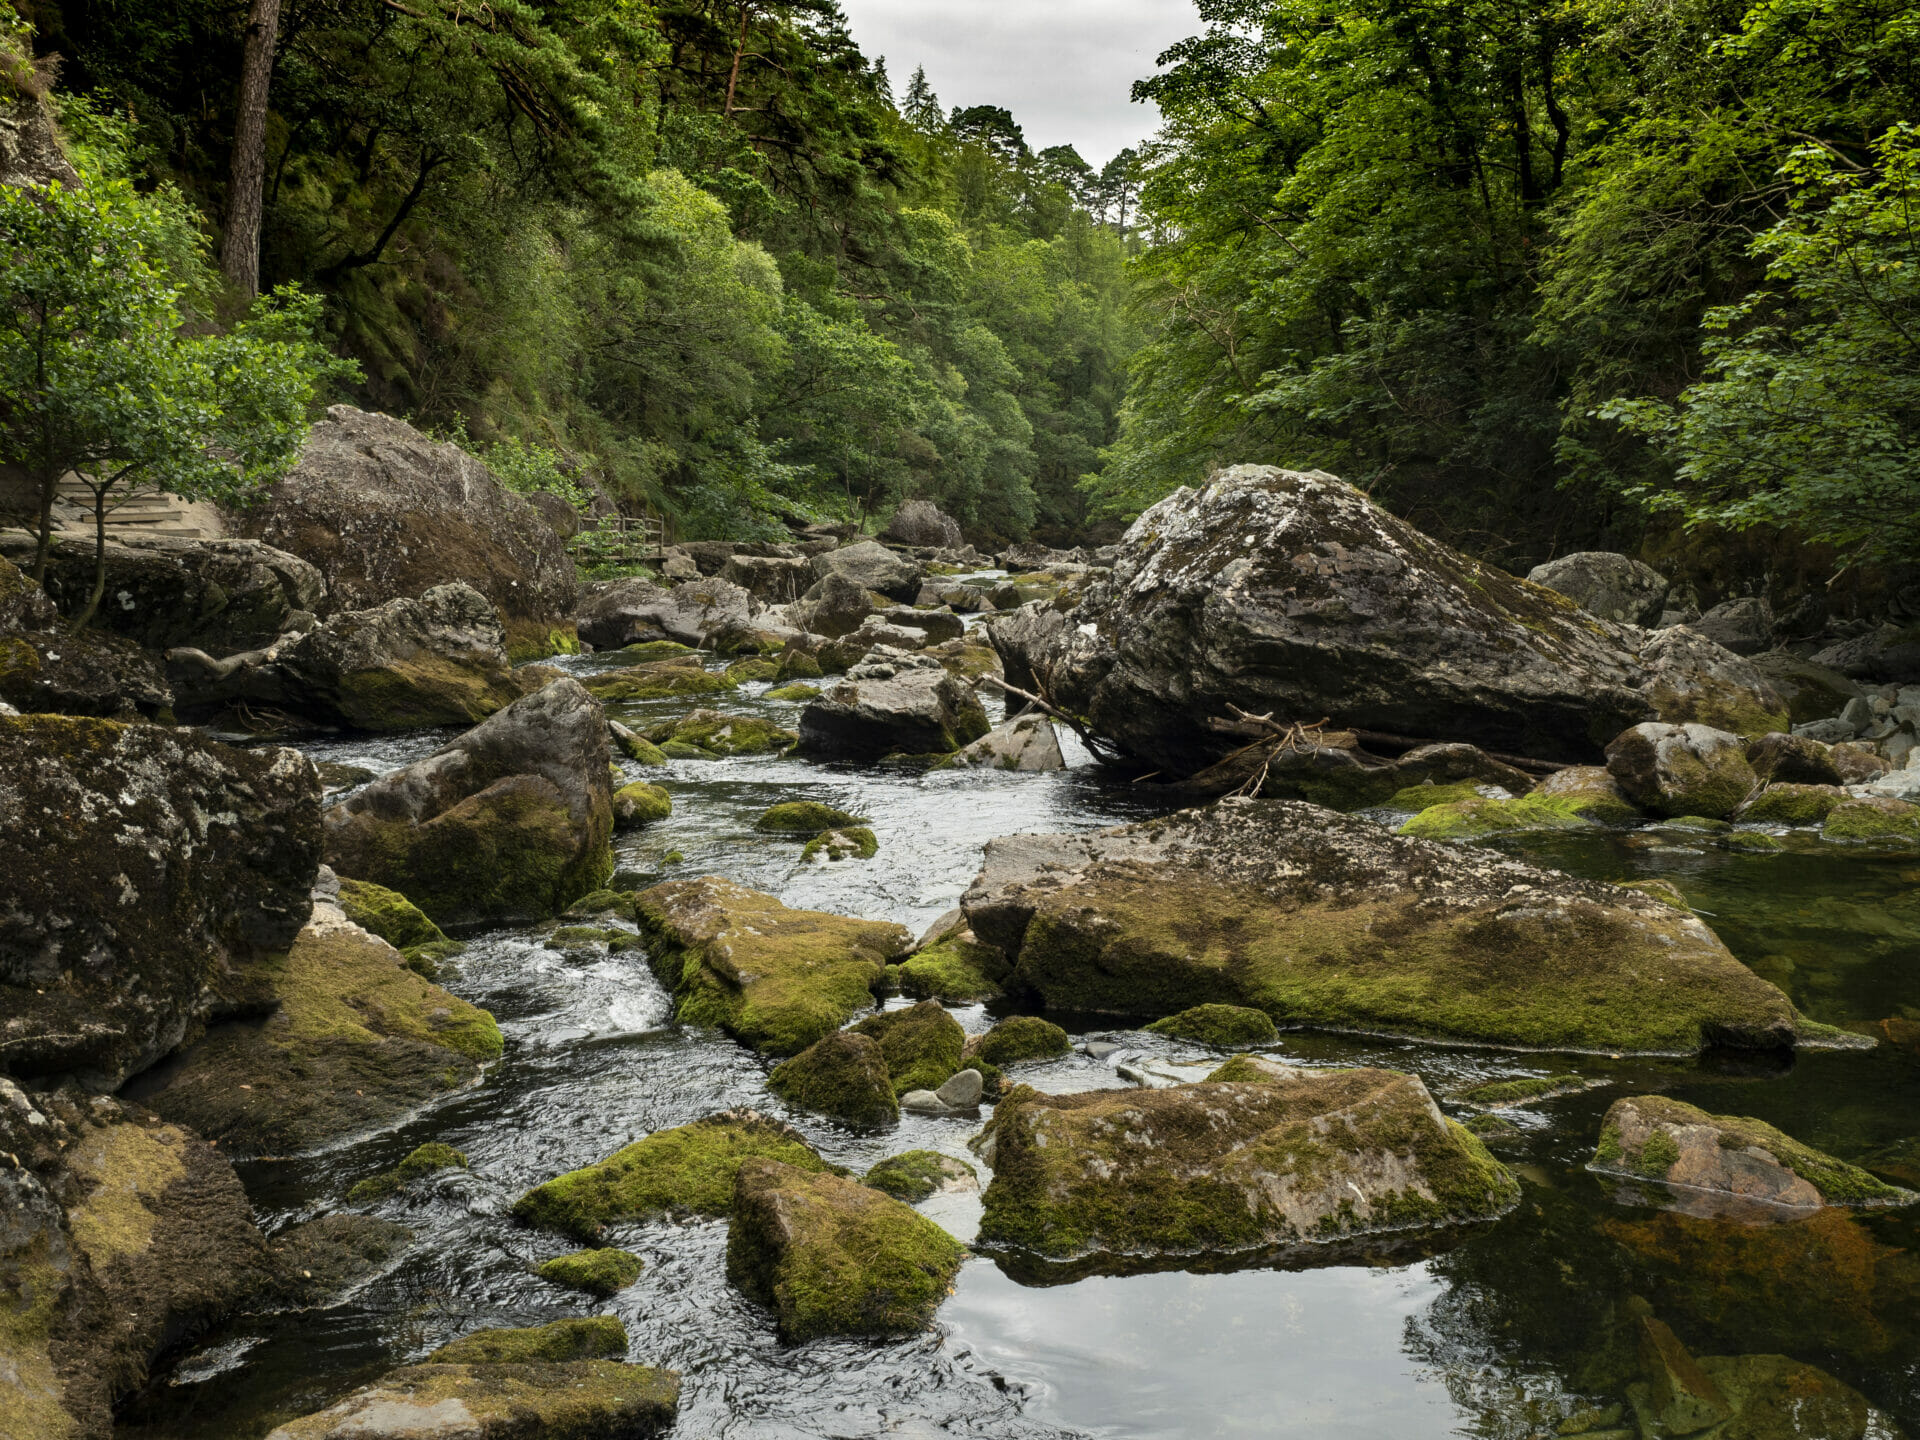 Photo of Green Trees alongside the Glaslyn river in Beddgelert, Snowdonia National Ark, North Wales. Taken by Eifion Williams on a Waling With Helen Iles Photo Walk for Welshot Imaging Photographic Academy